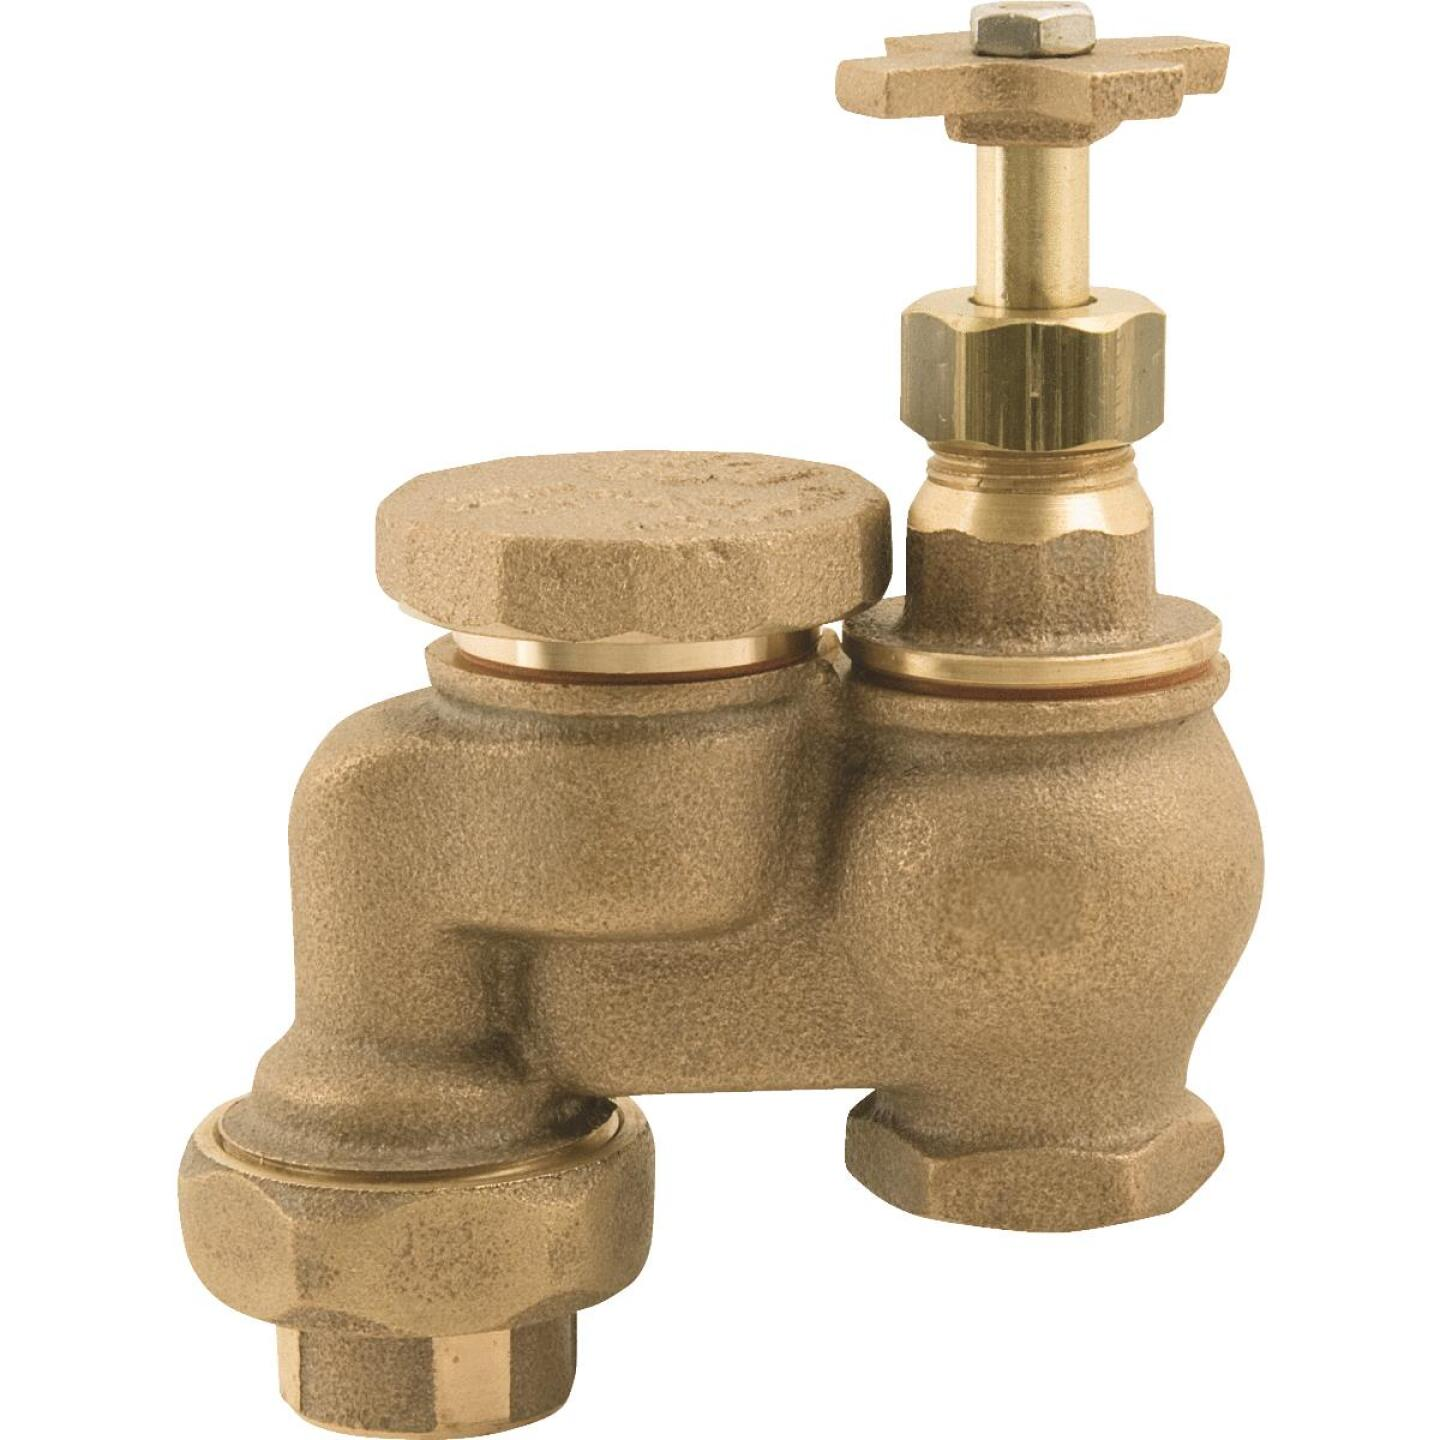 Champion 3/4 In. 25 to 150 psi Anti-Siphon Valve with Union Image 1